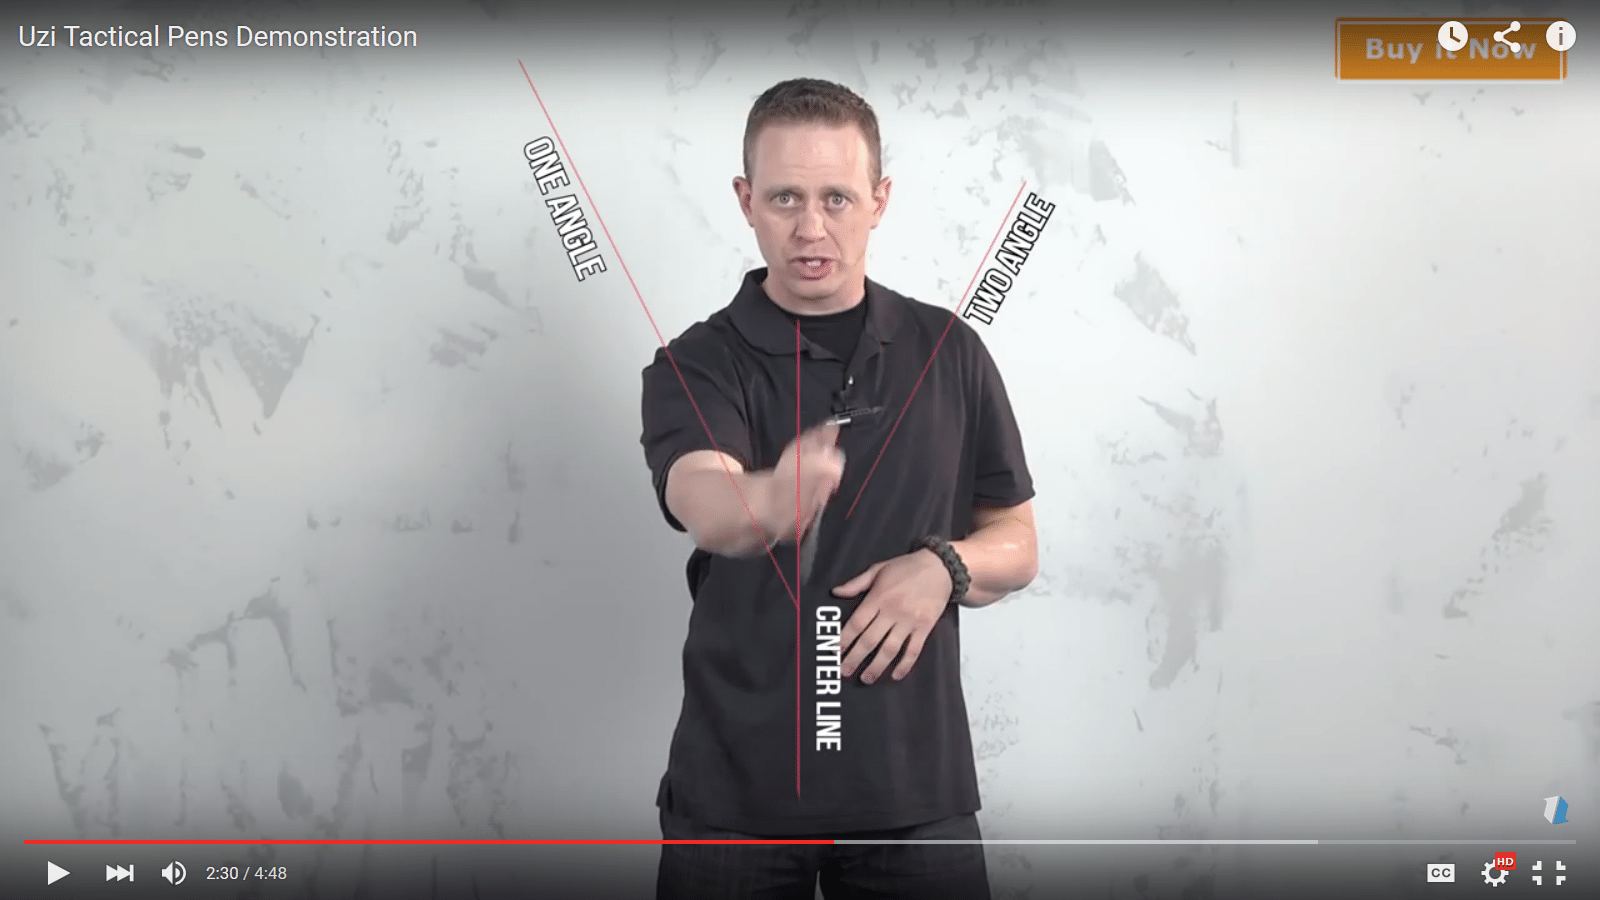 three possible slashing motions with a tactical pen